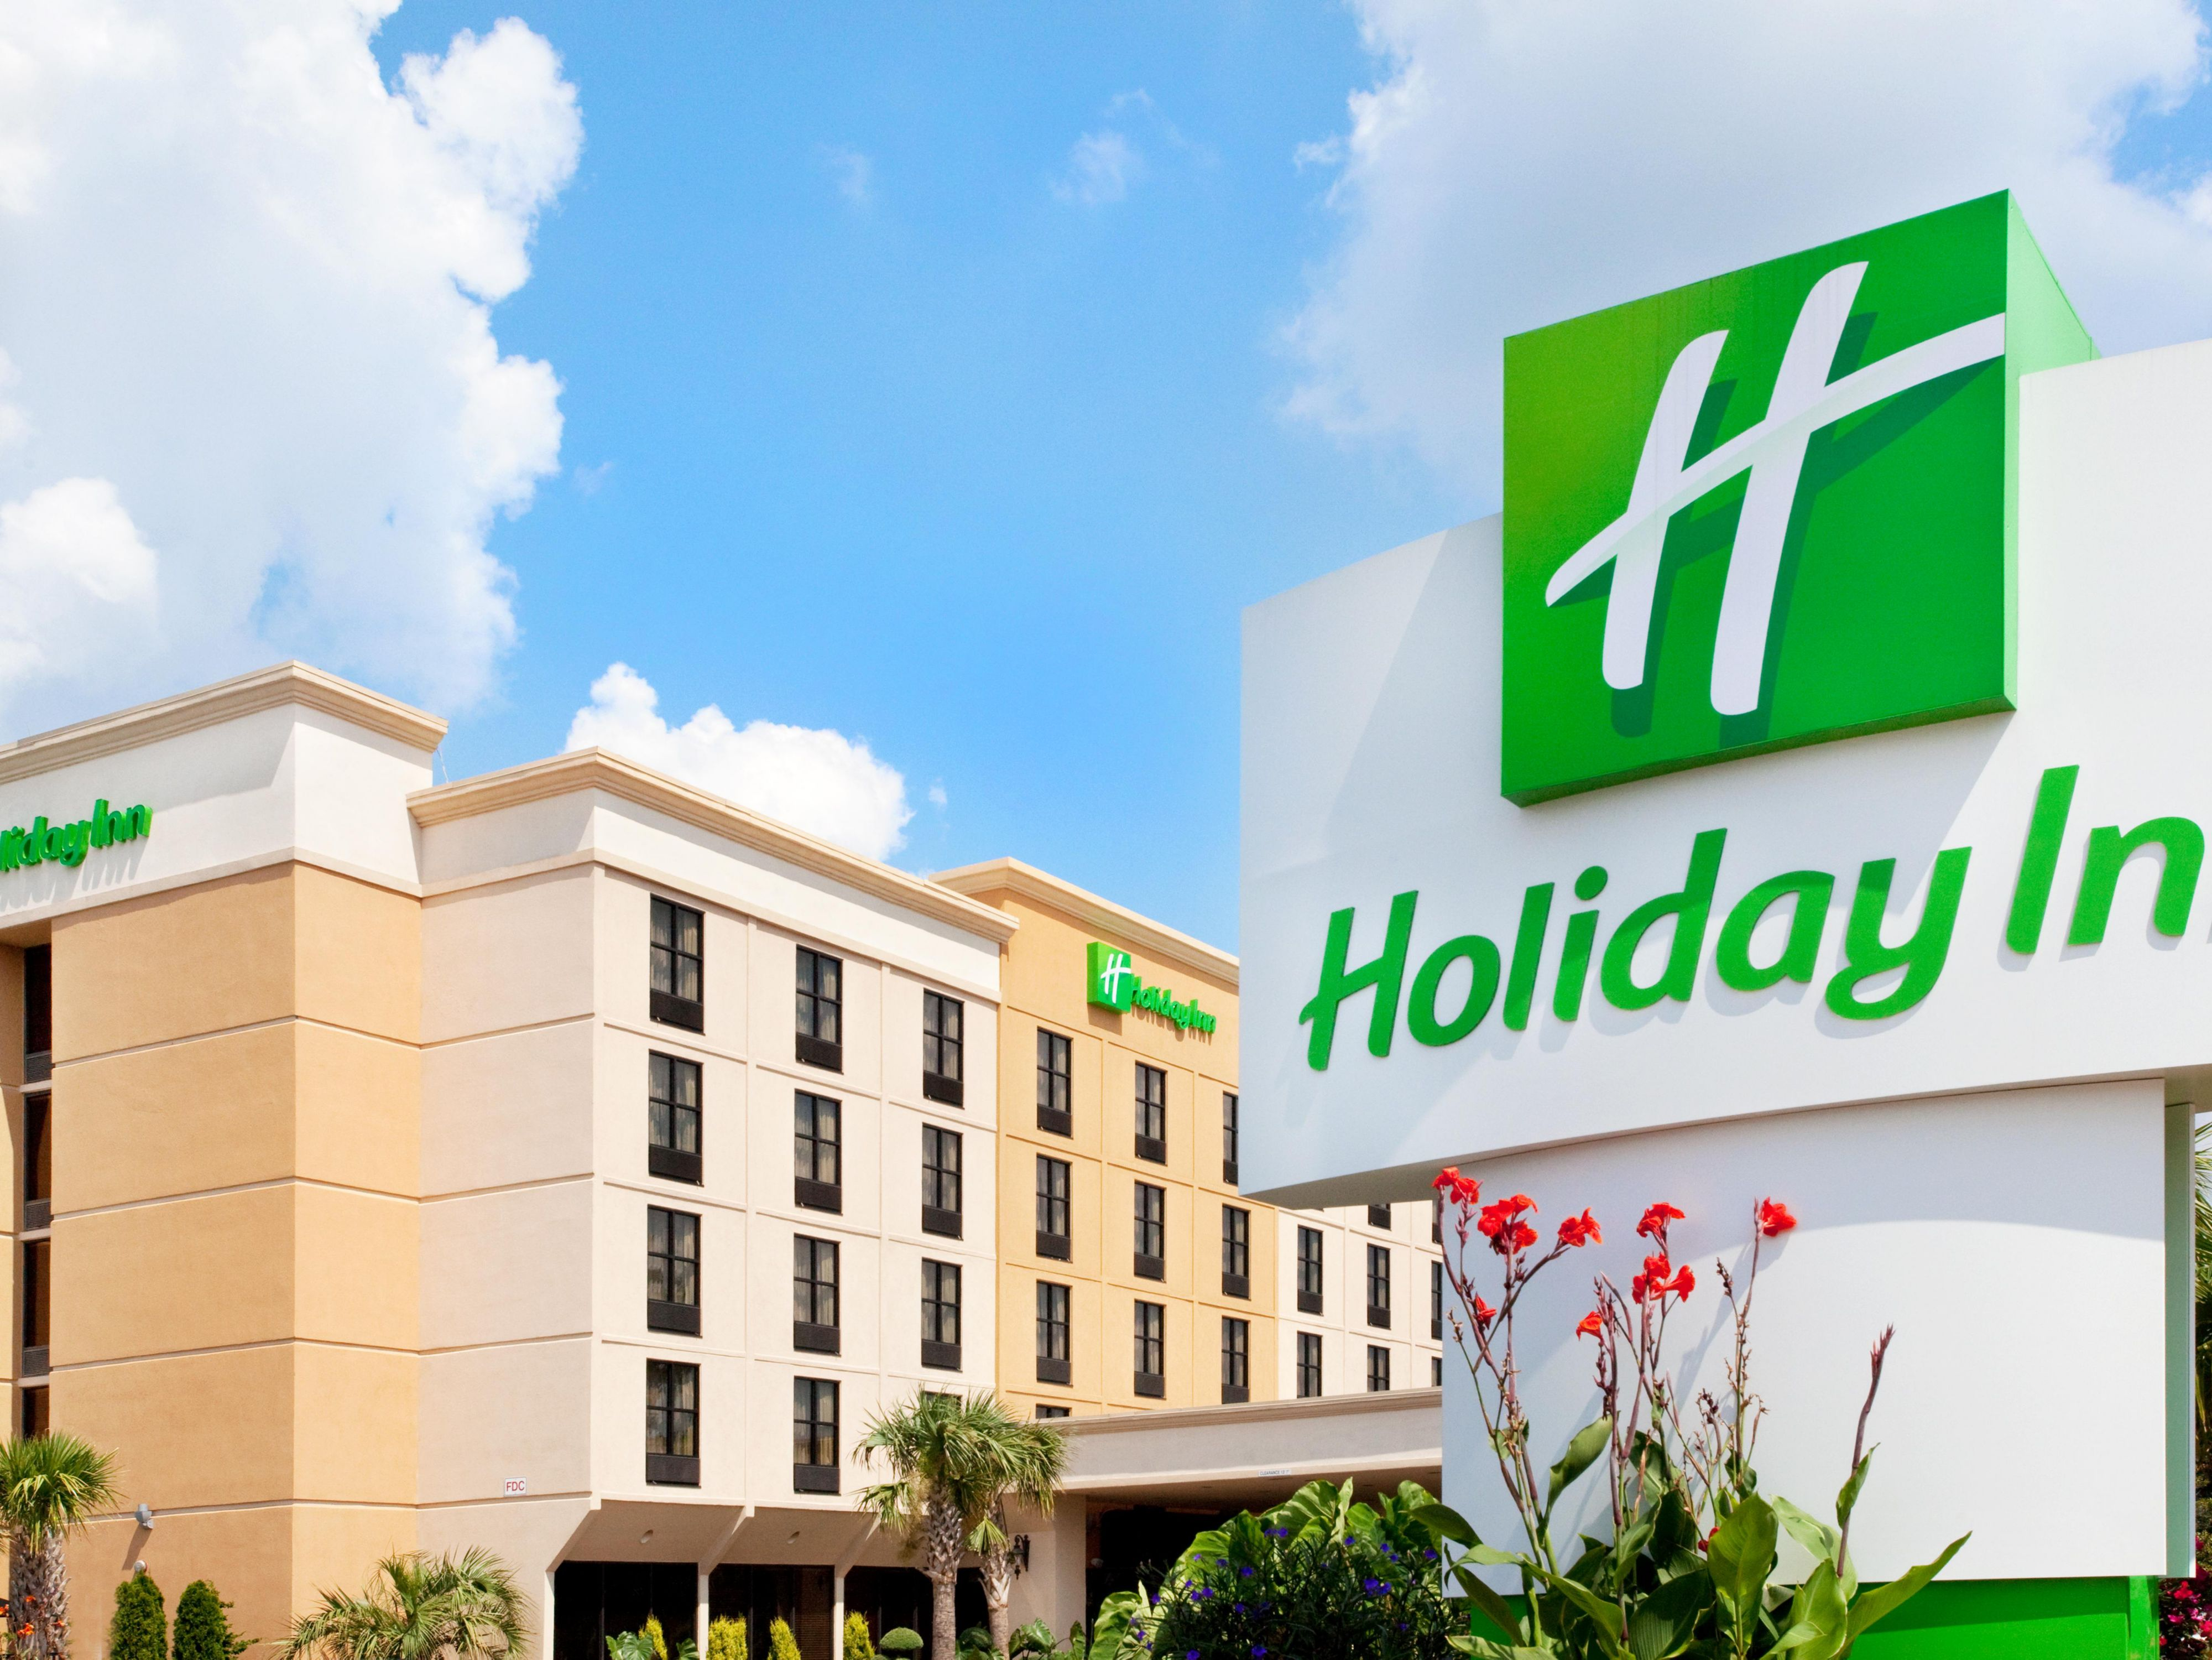 Welcome to the beautiful Holiday Inn Northlake